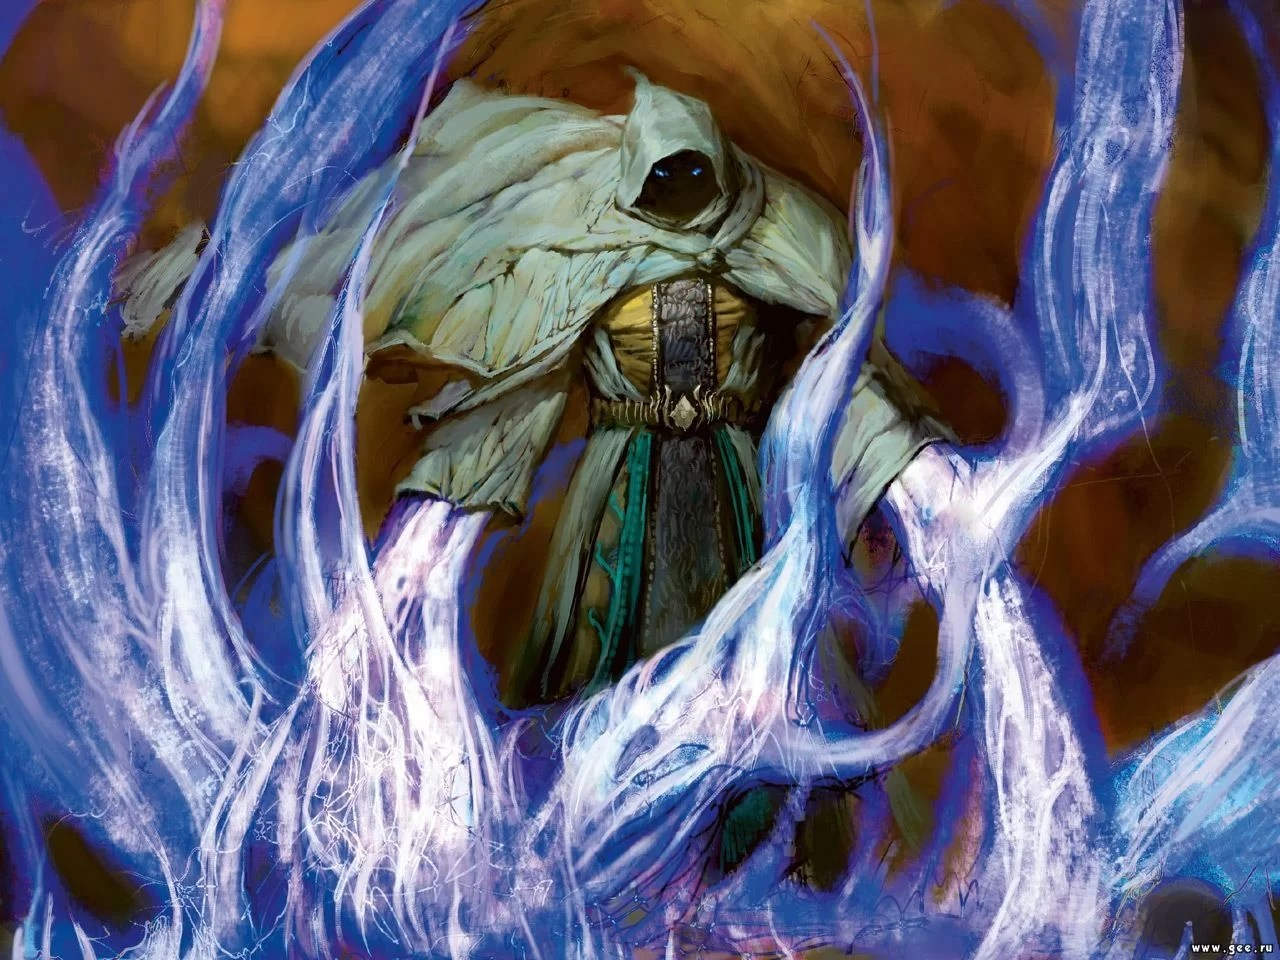 Two Low Cost Card Tactics To Boost Your LGS Sales